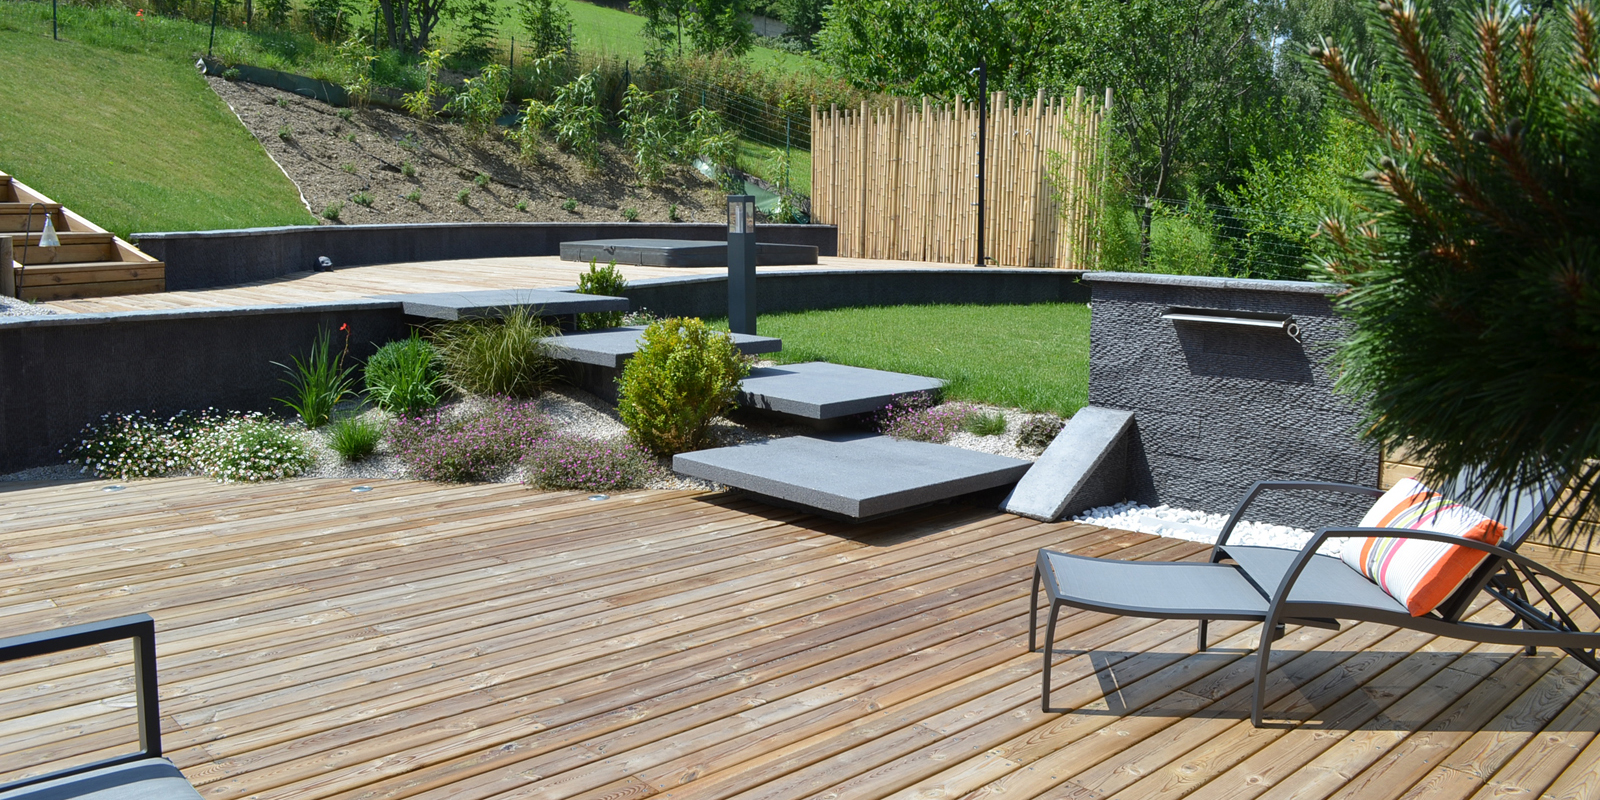 am nagement jardin paysagiste aquatique as de tr fle paysage haute loire et loire terrasses. Black Bedroom Furniture Sets. Home Design Ideas